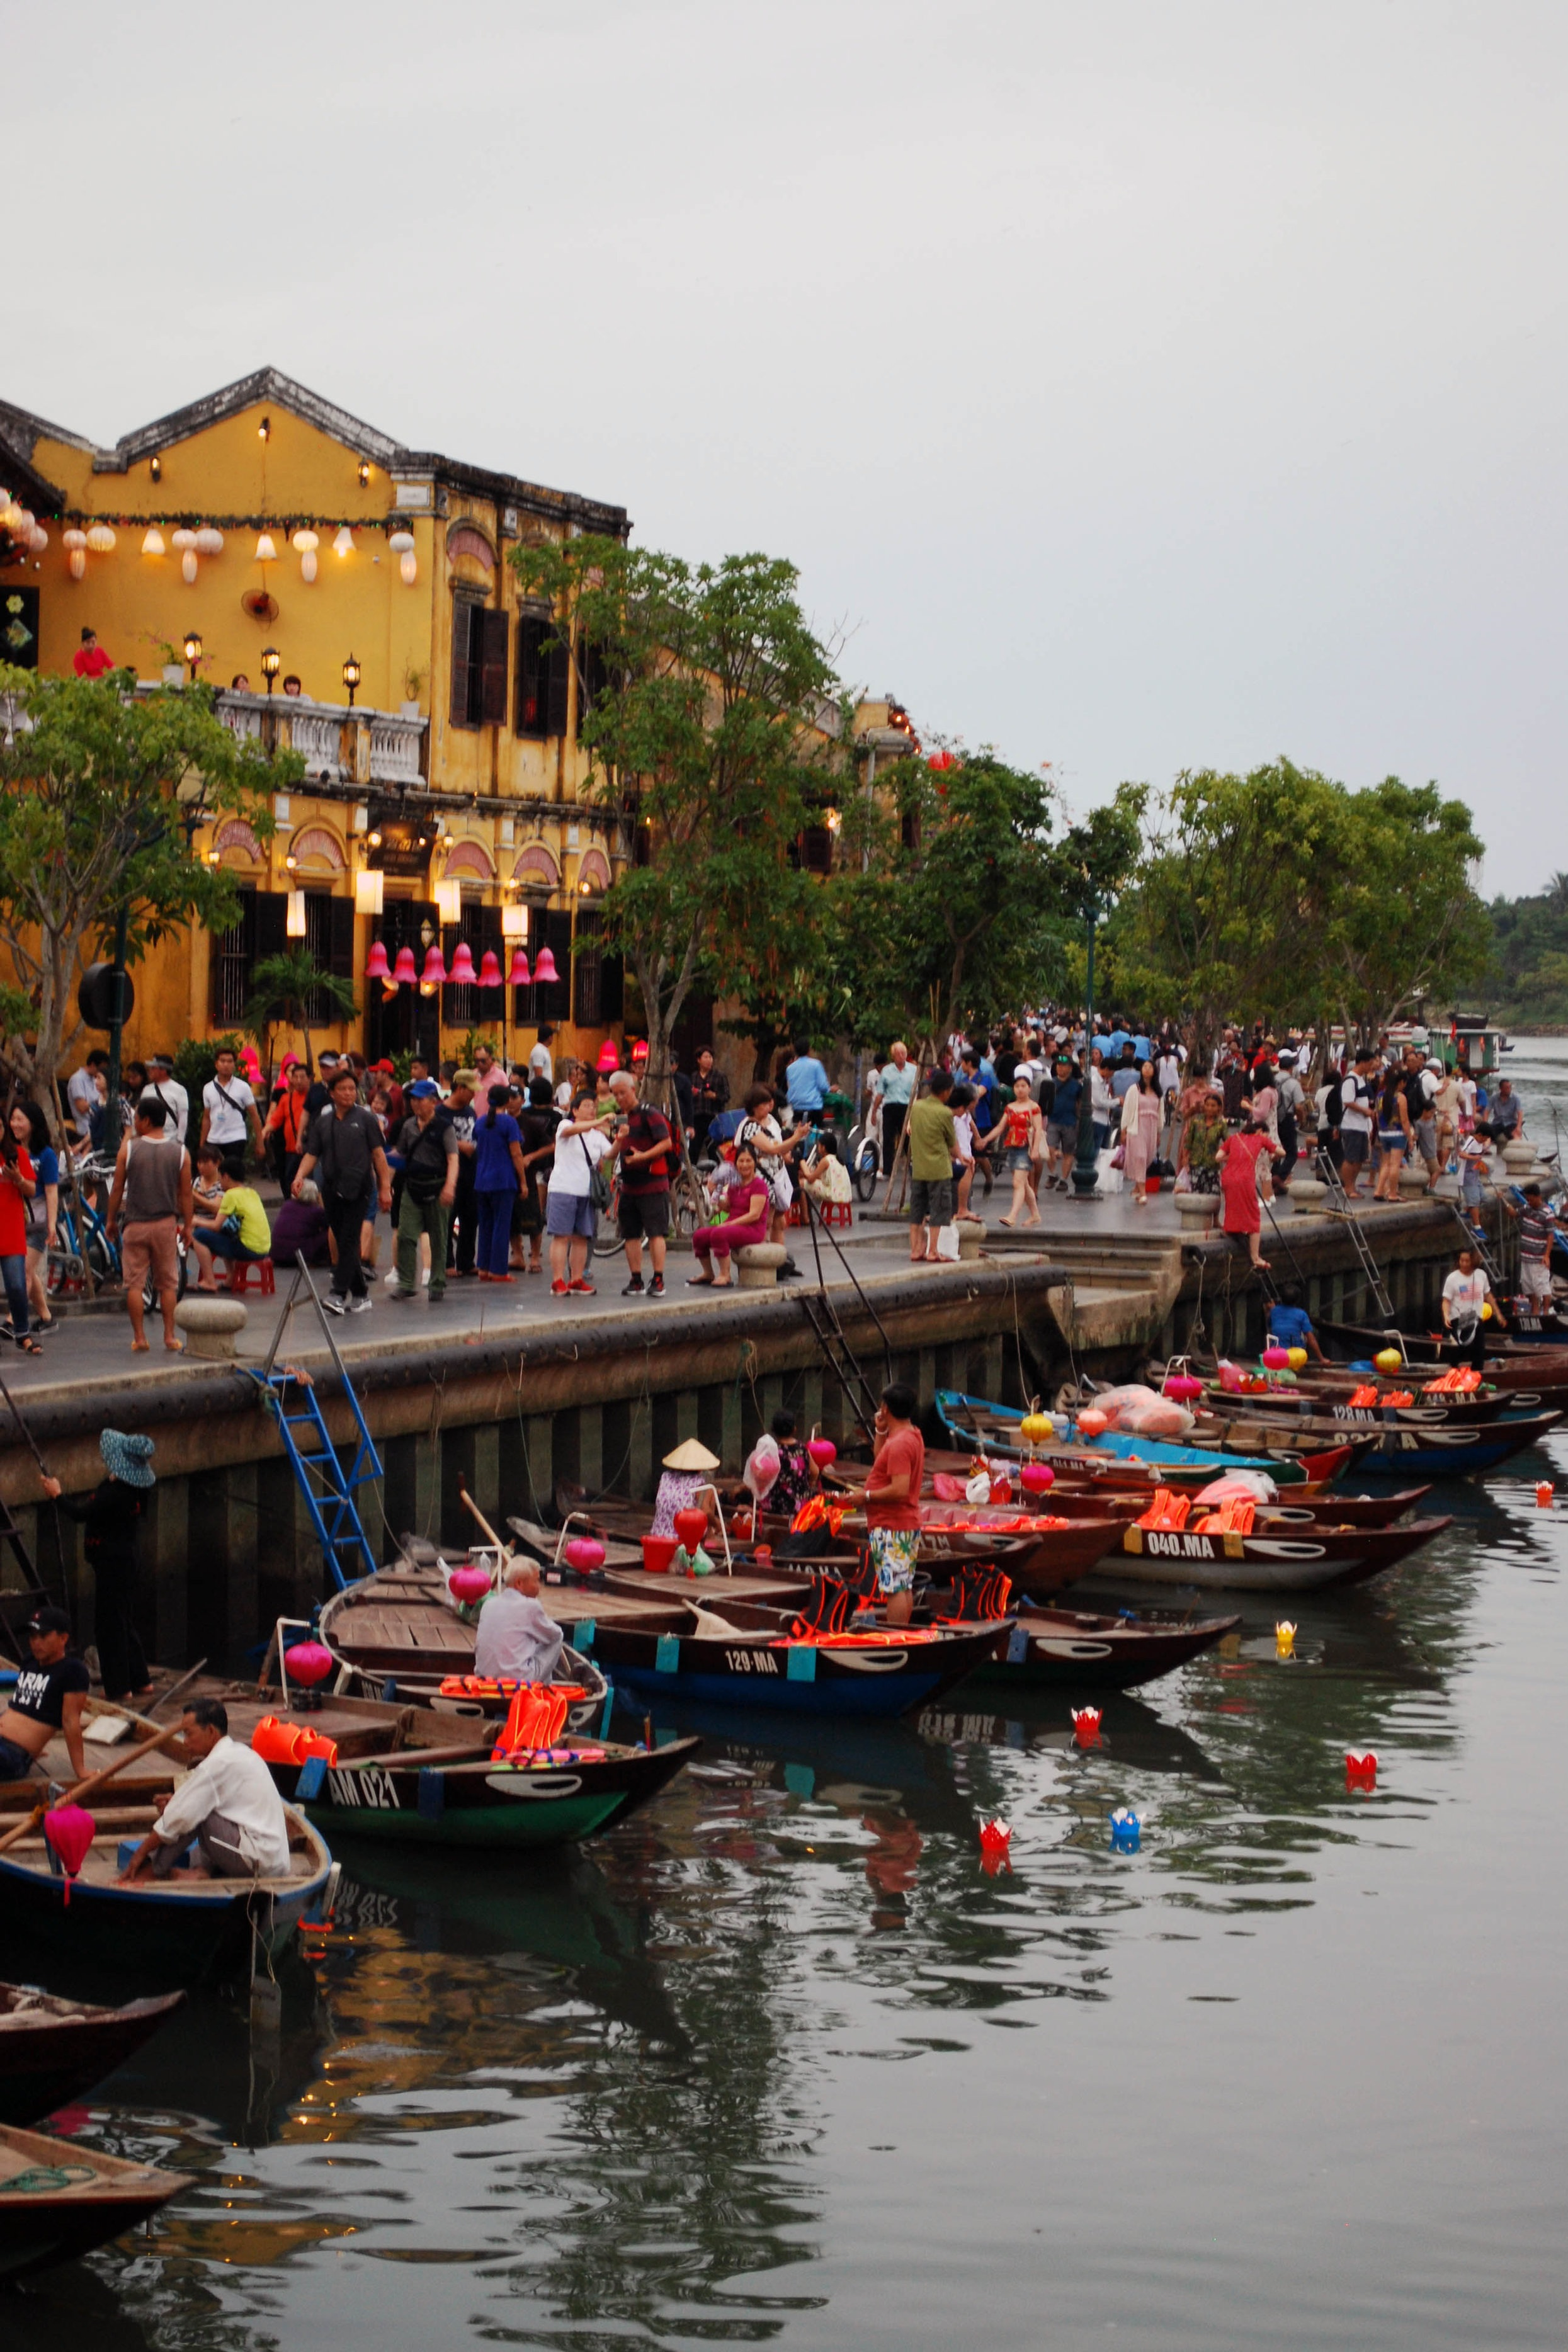 Tourists boarding boats along the canal